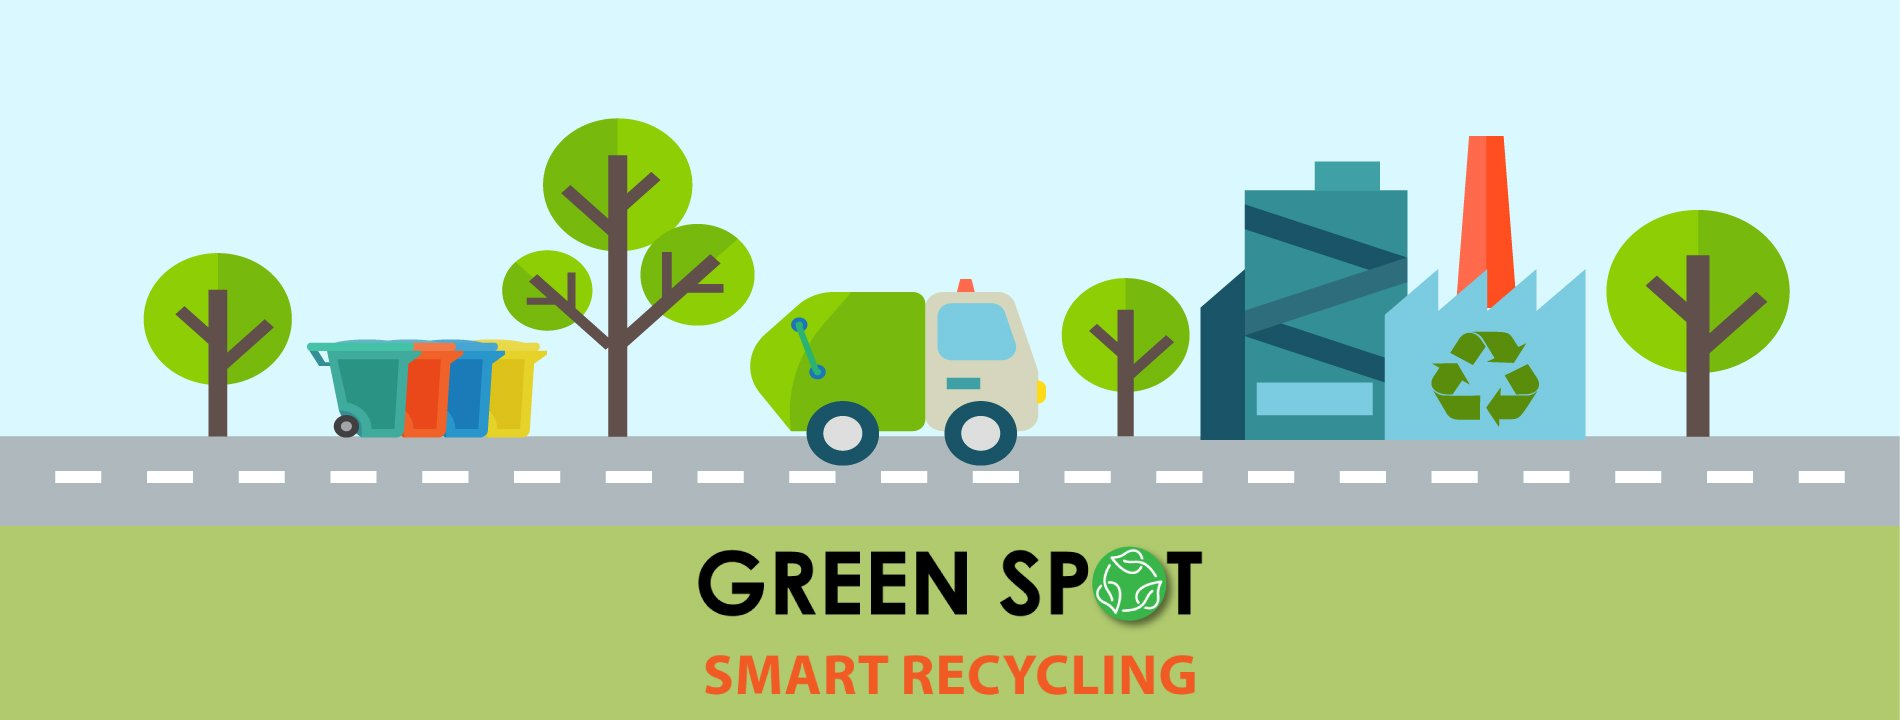 Green Spot Total Recycling Solution